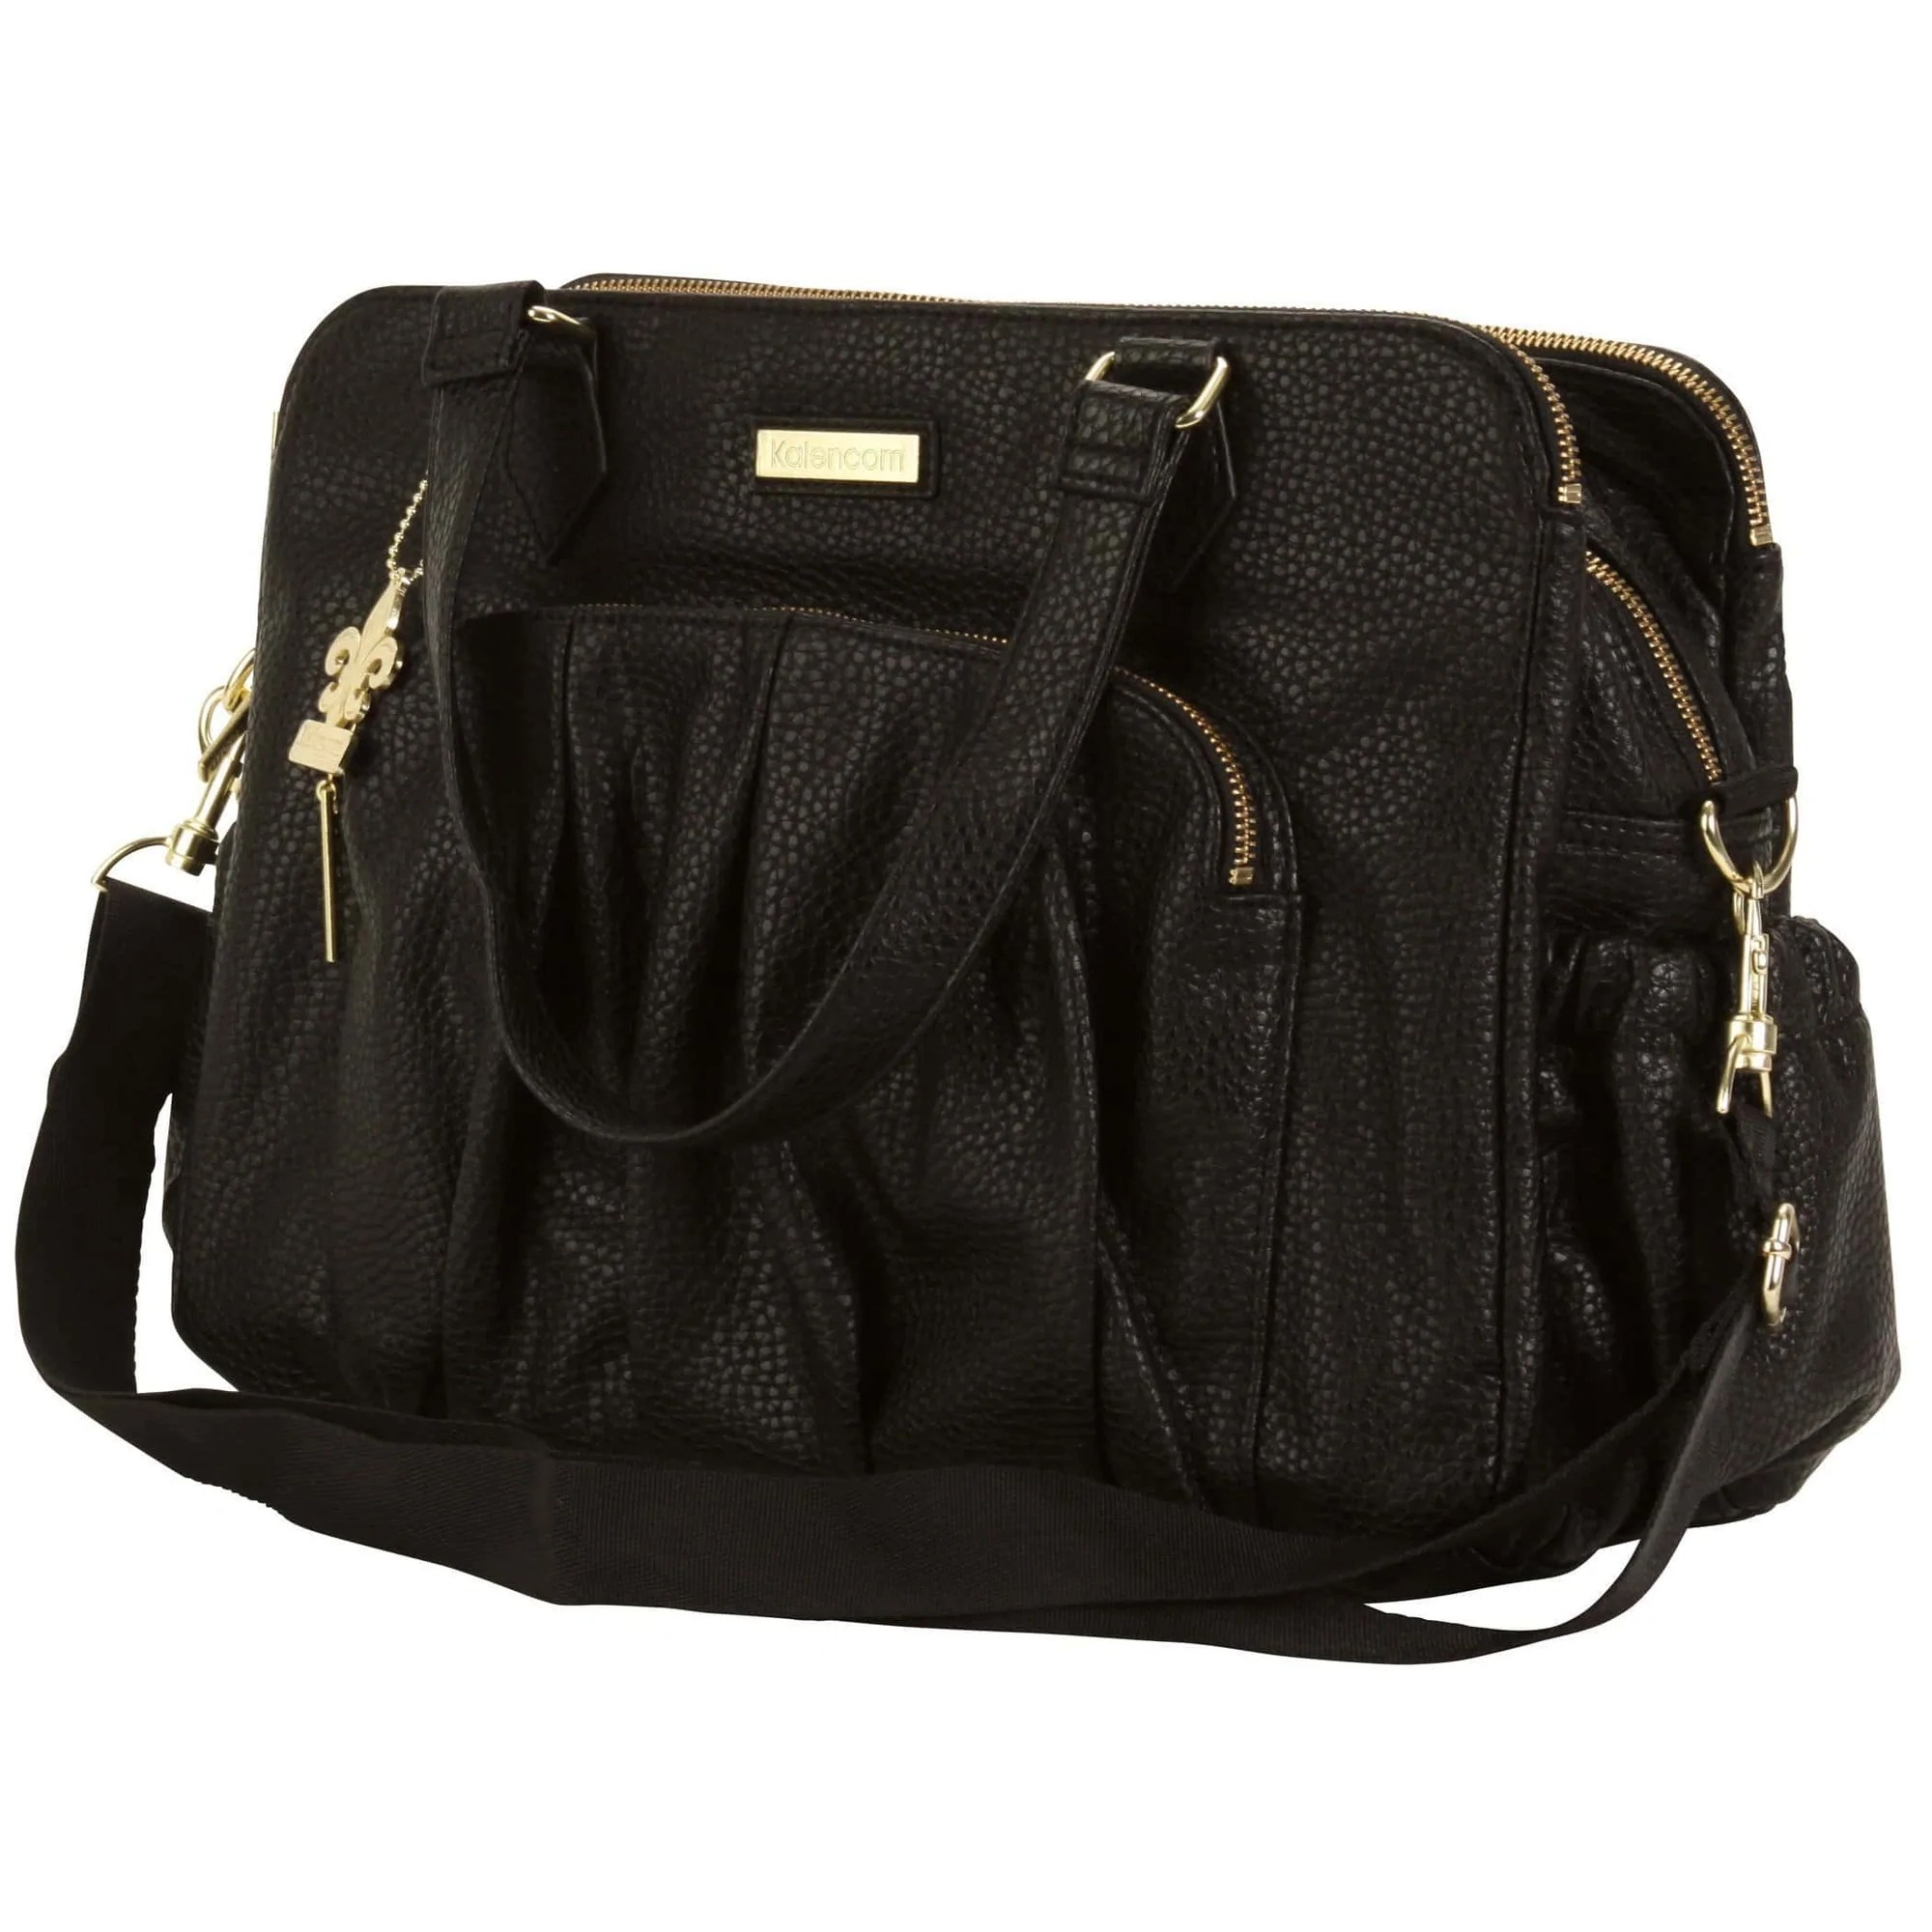 Berlin - Black Diaper Bag Style 2996 Kalencom Jack And Jill Boutique